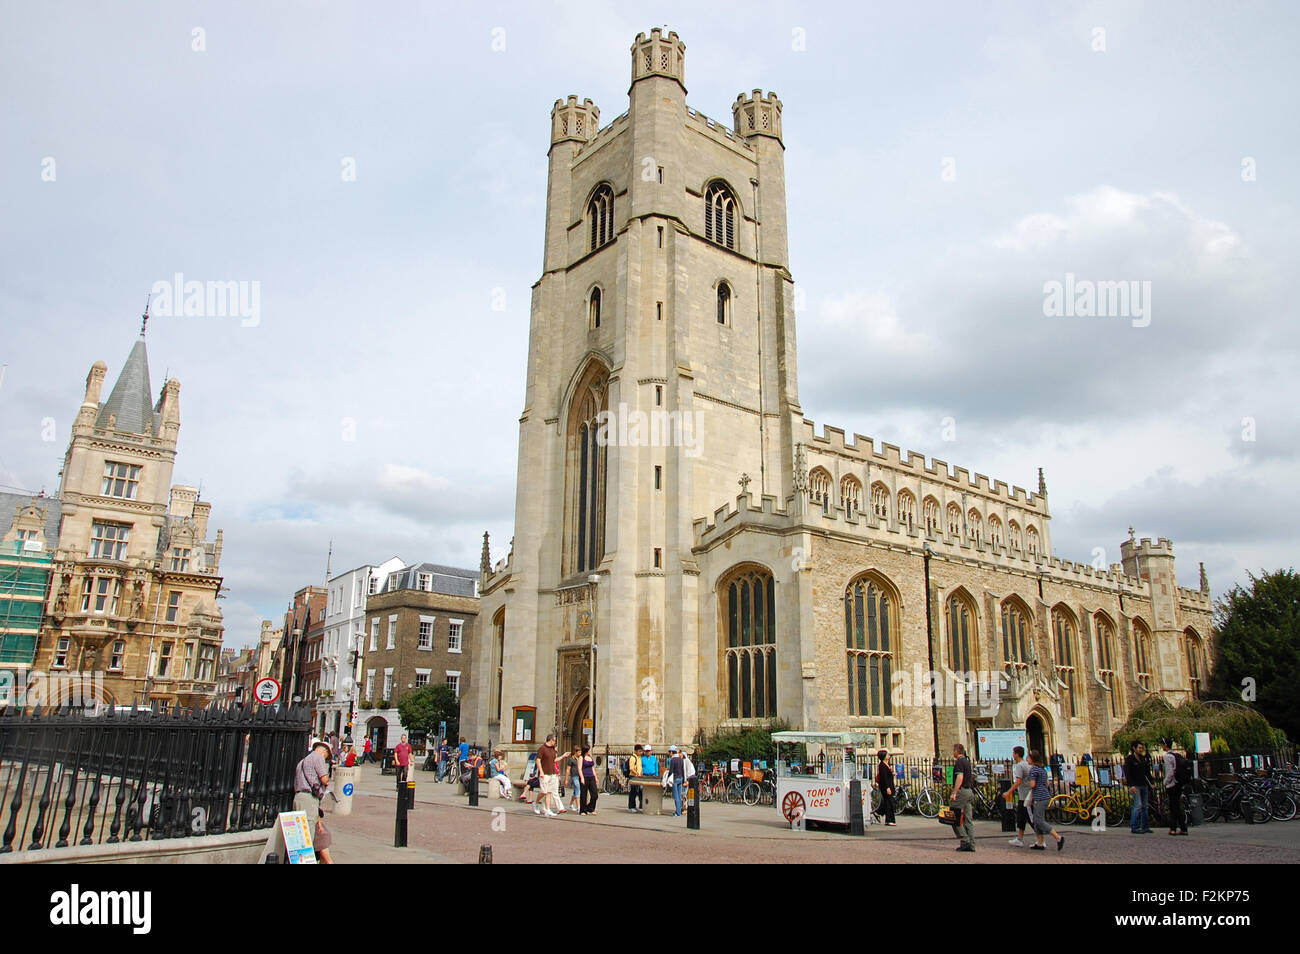 Great St. Mary's Church in Cambridge, England. - Stock Image